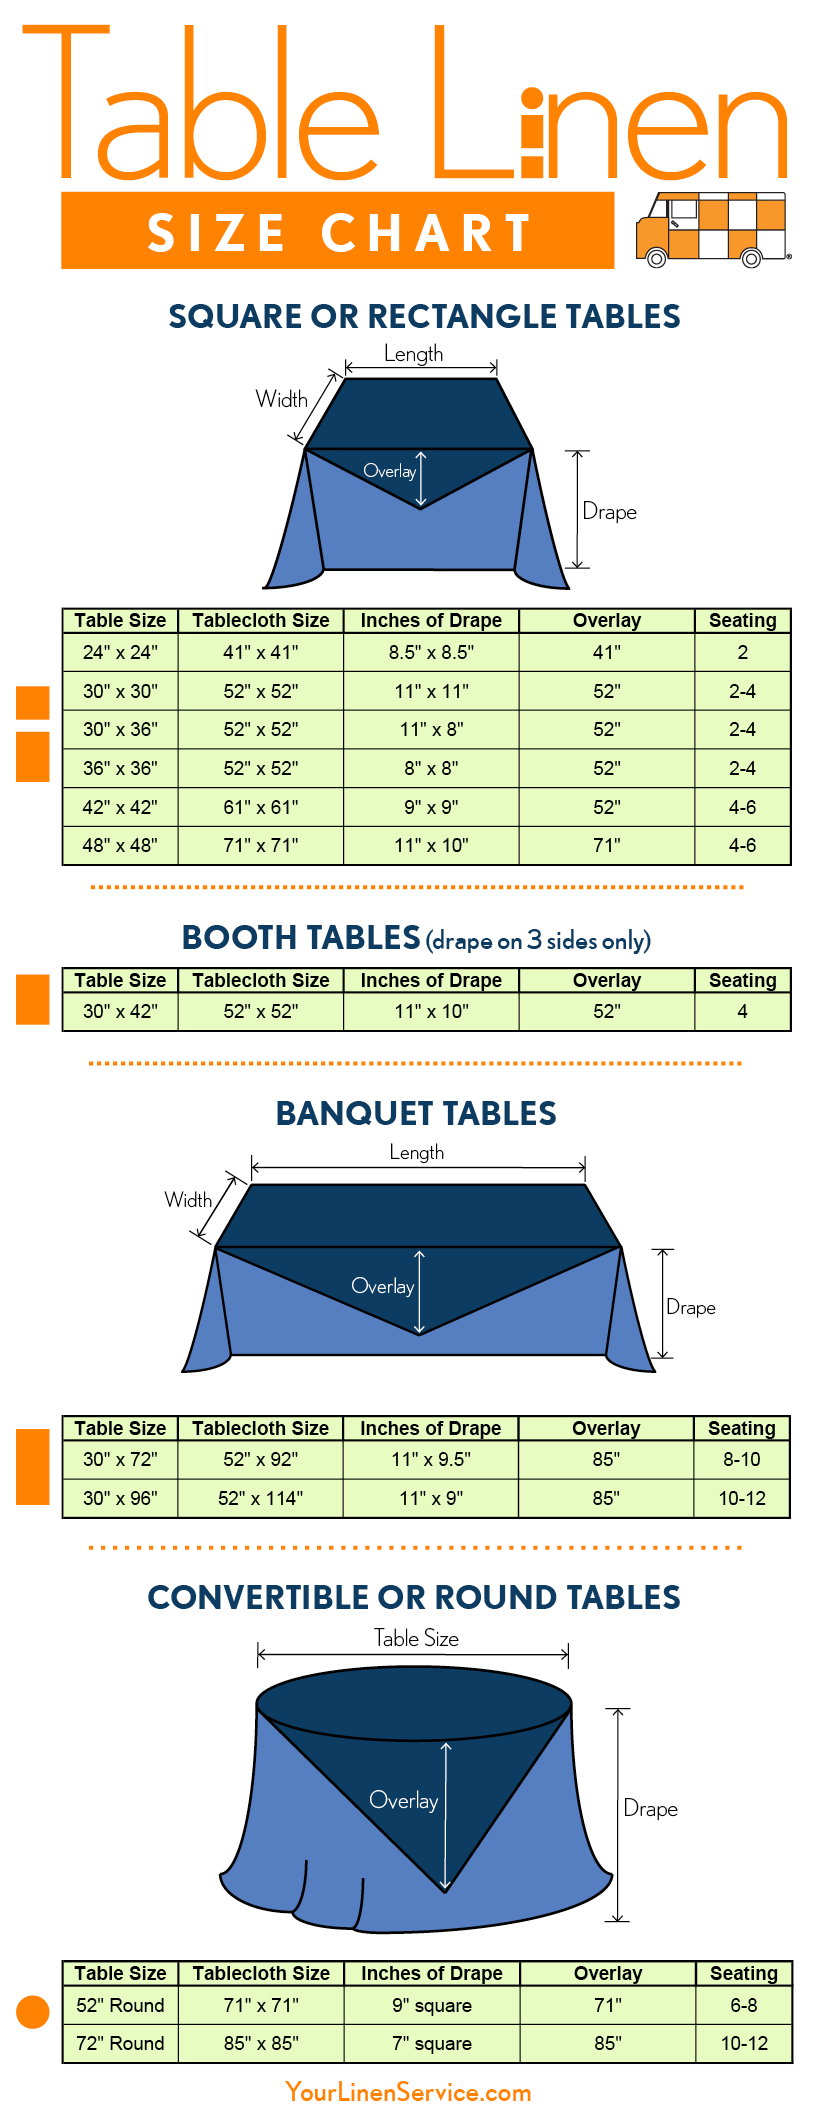 Table Linen Size Chart Square Rectangle Circle And Banquet Rh Pinterest Com Pink Tablecloth Measurements